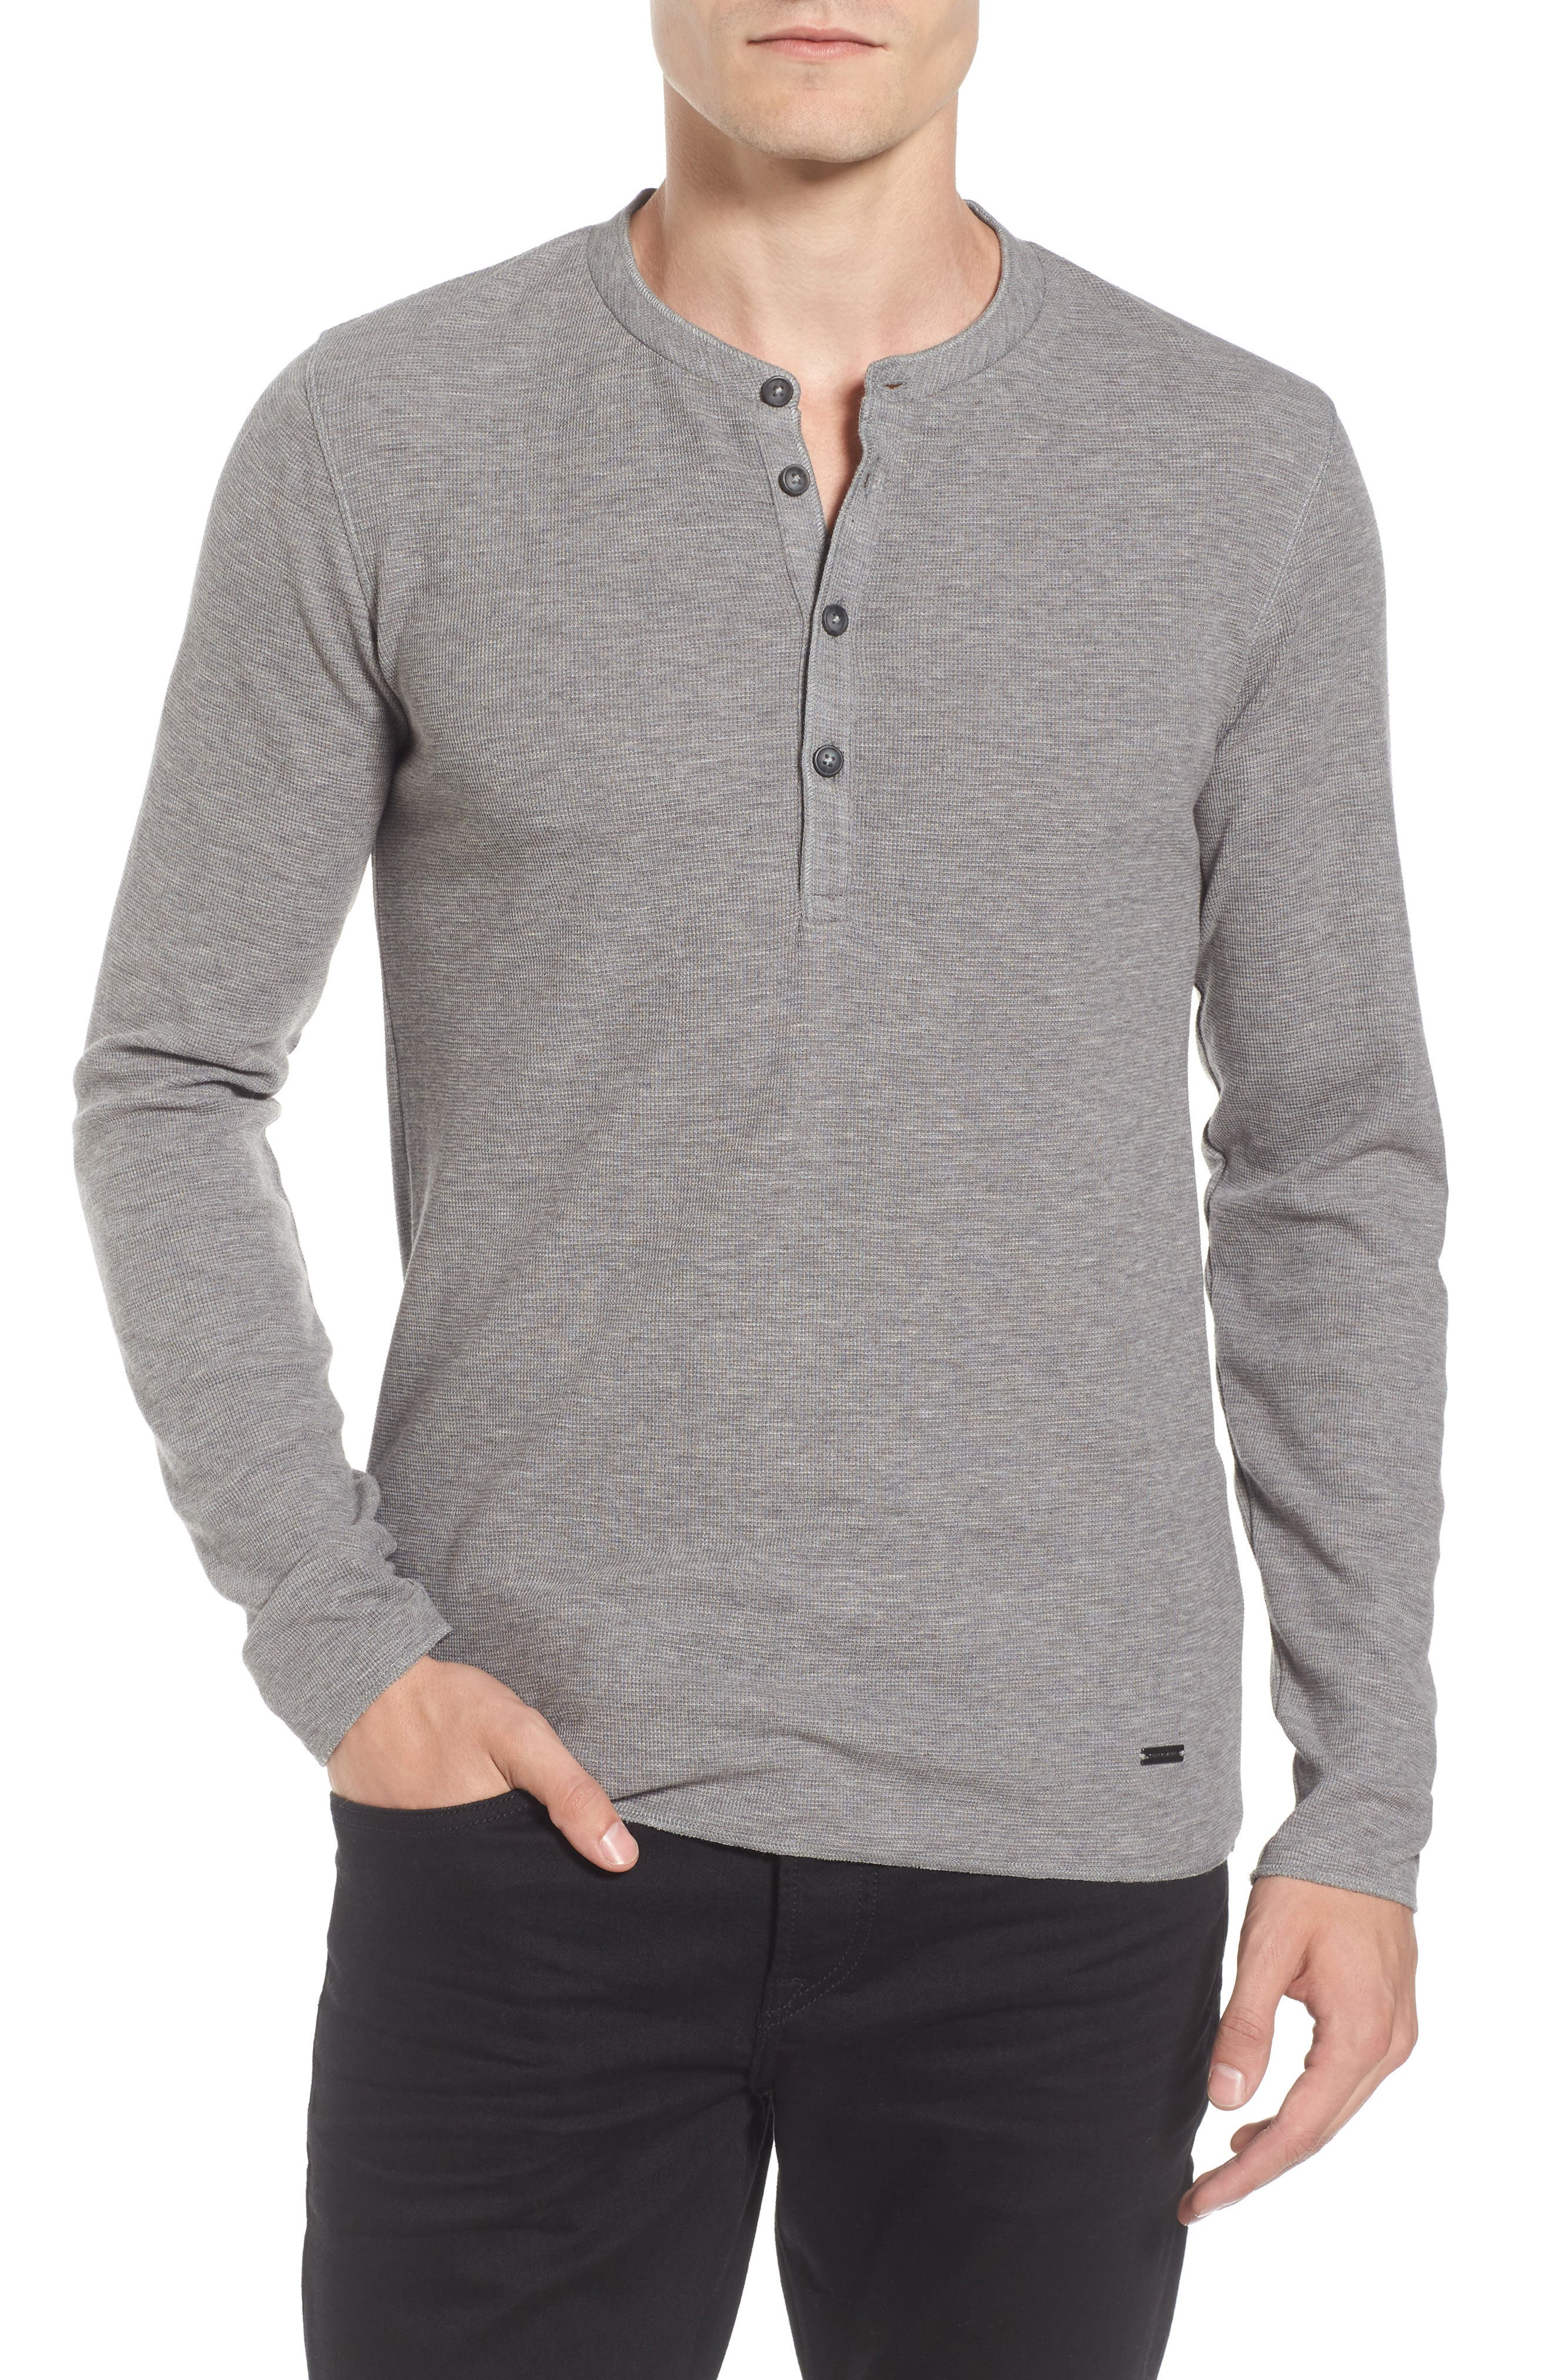 Topsider Thermal Henley,                             Main thumbnail 1, color,                             051